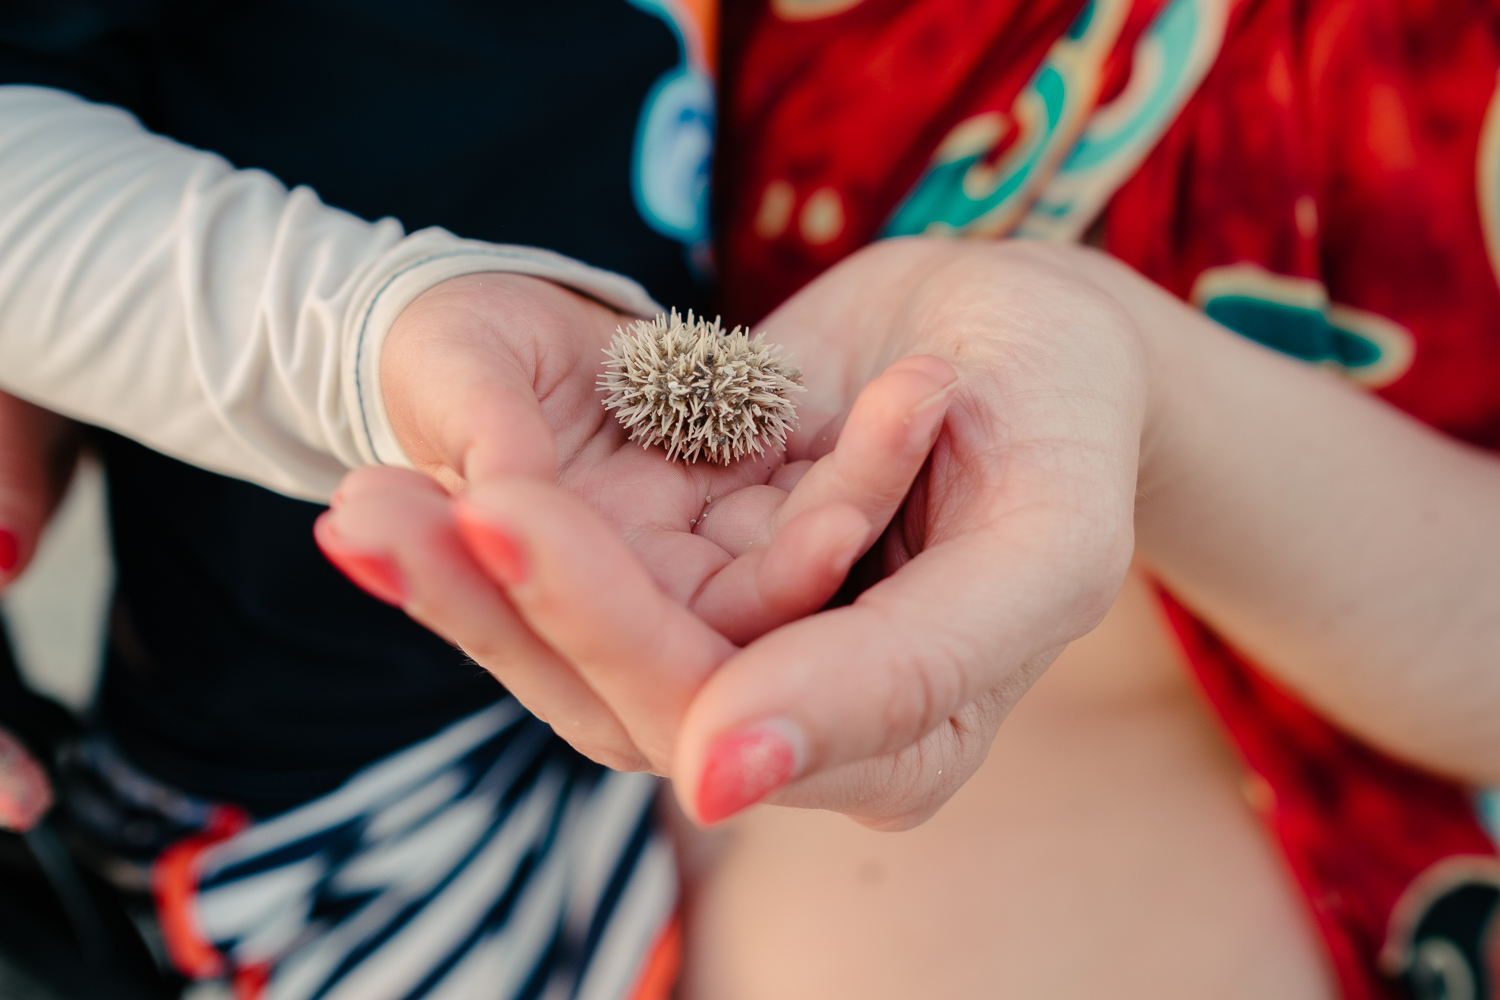 My son meeting his first sea urchin in Varadero, Cuba 2015.